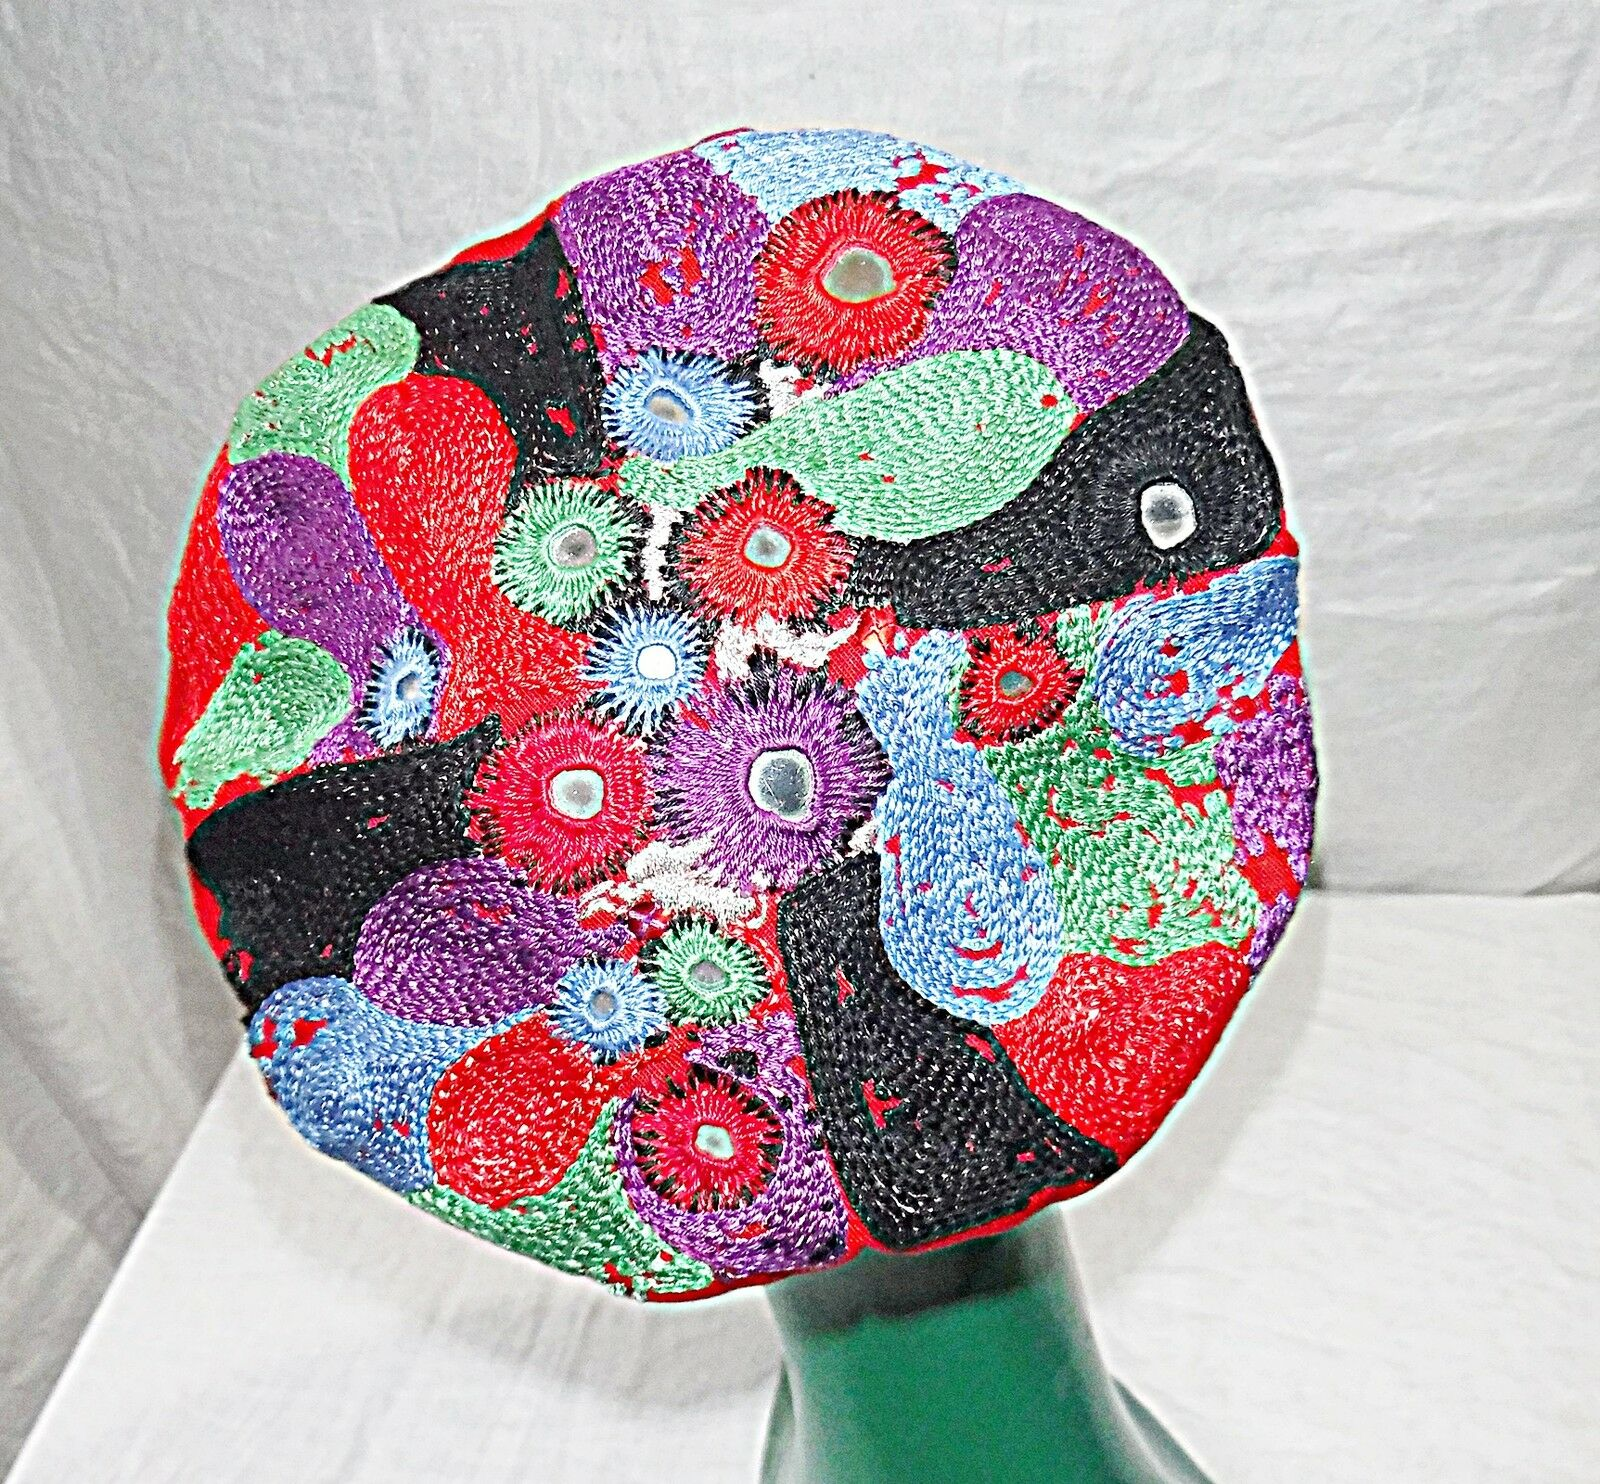 *22 INCH BAND BERET PERCHER HAT ETHNIC HIPPY FESTIVAL MULTICOLOURED WITH MIRRORS